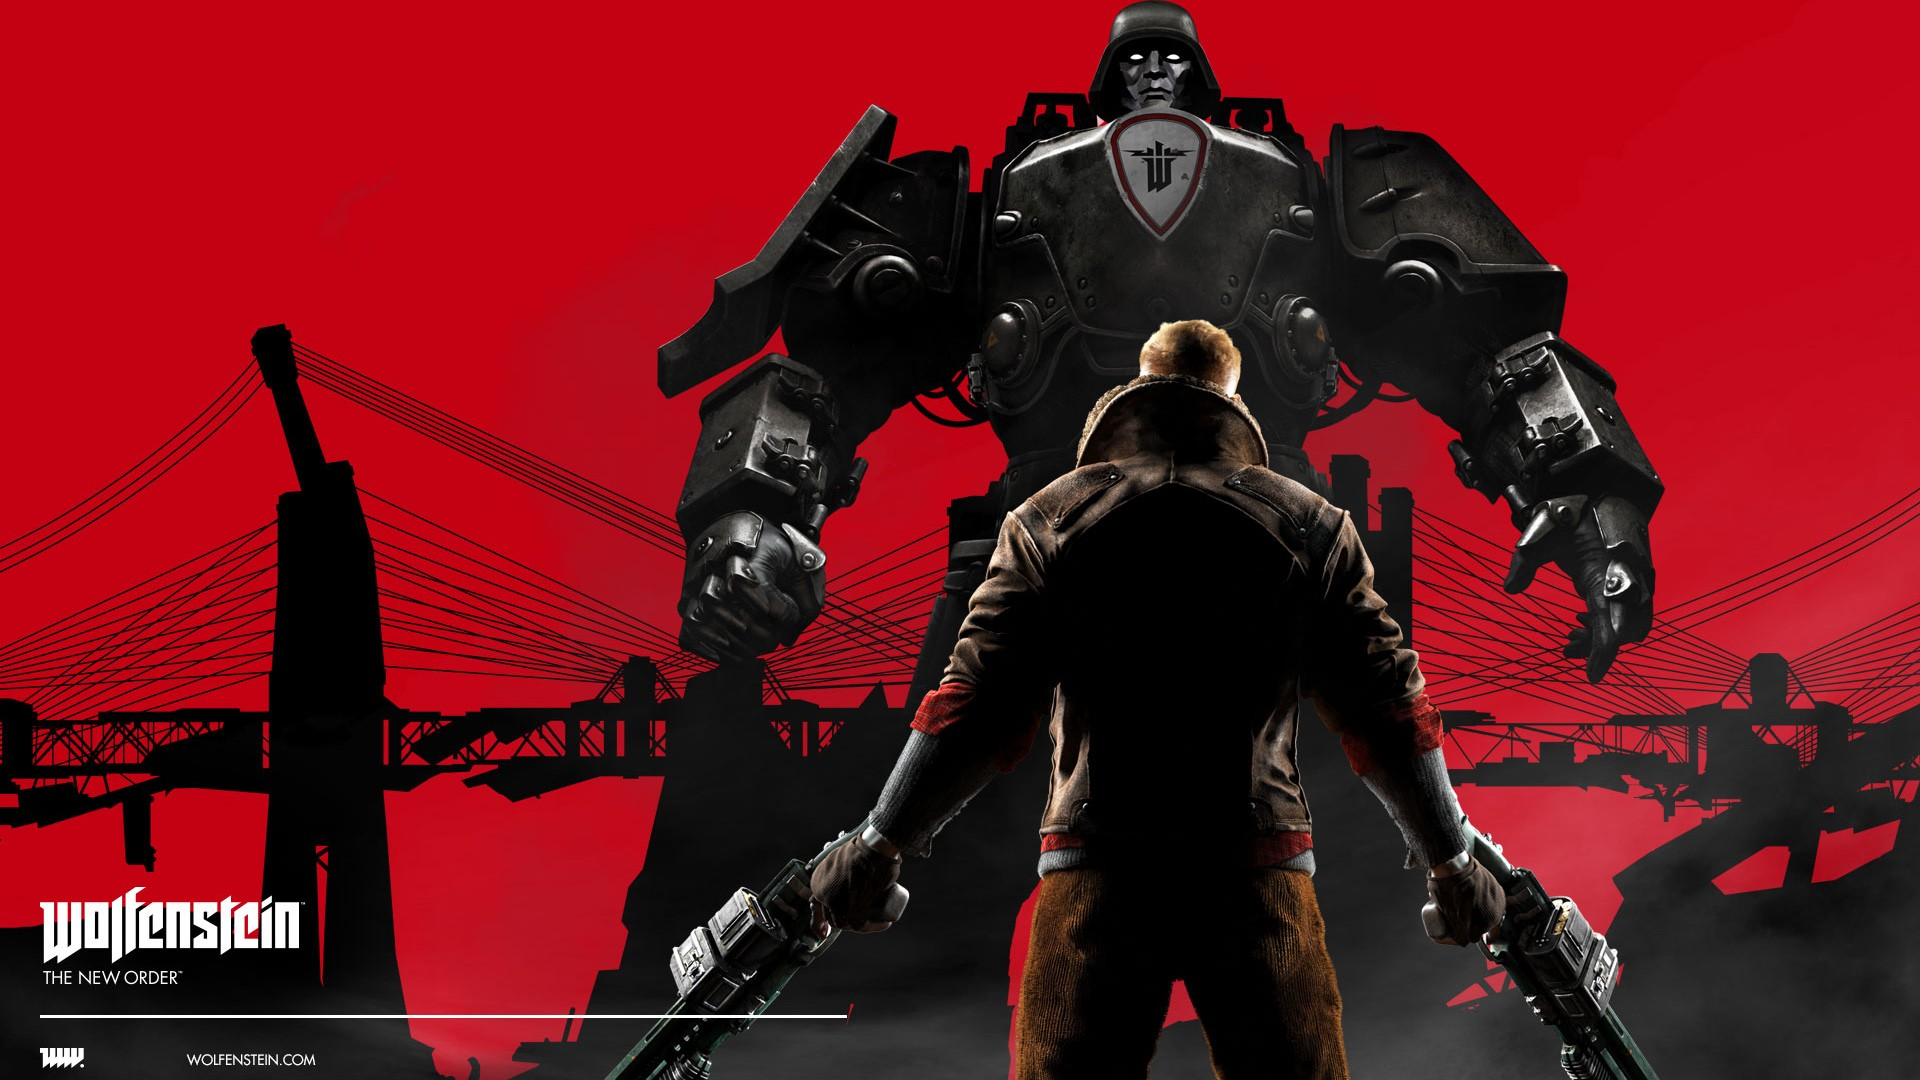 Gaming Wallpapers Hd 2014 Wolfenstein The New Order Wallpapers Hd Wallpapers